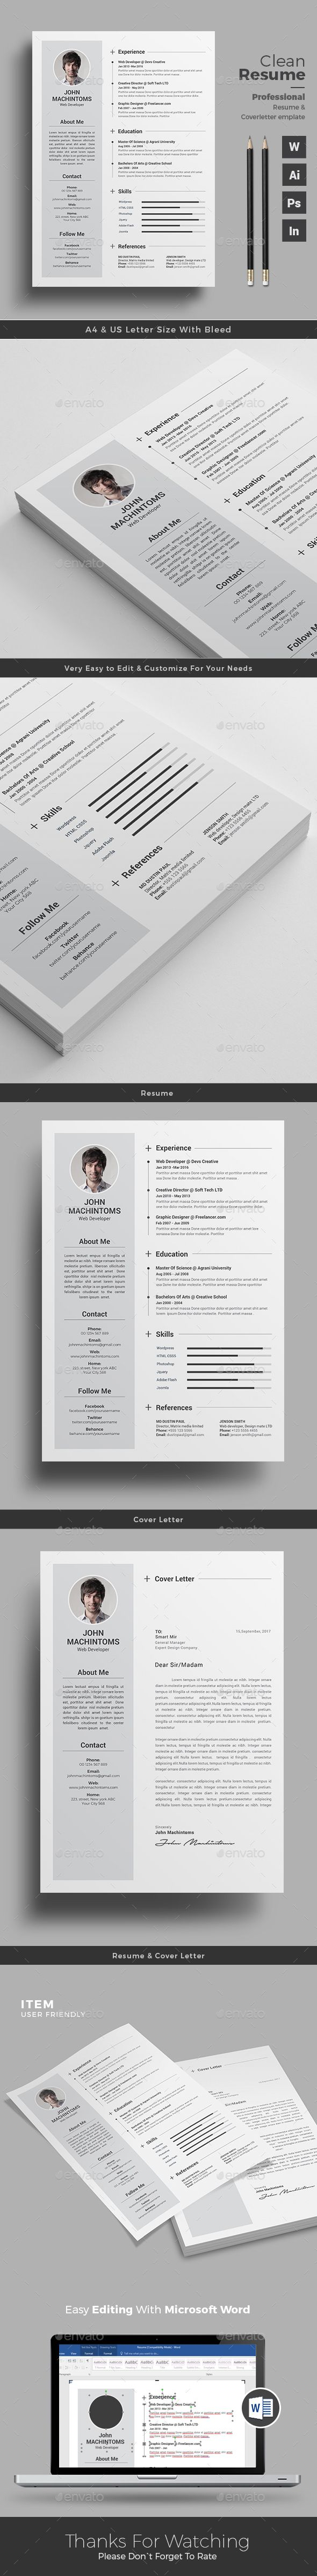 Clean Professional Resume Word Template | MS Word + PSD + AI + INDD | A4 & US Letter Size | Free Cover Letter | Download https://graphicriver.net/item/resume/17764831?ref=themedevisers